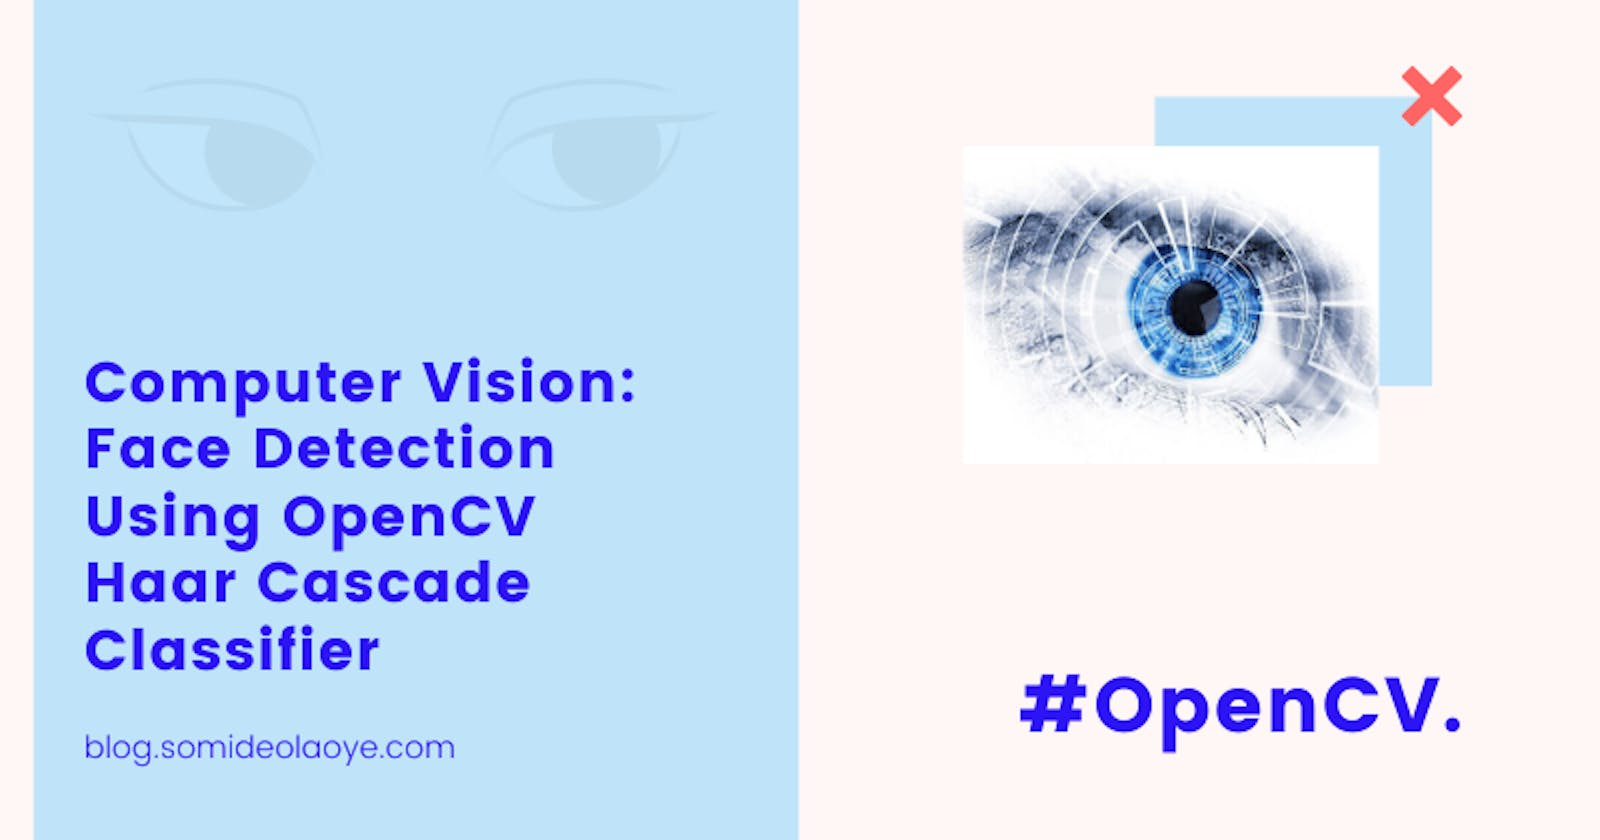 Computer Vision: Face Detection Using OpenCV Haar Cascade Classifier